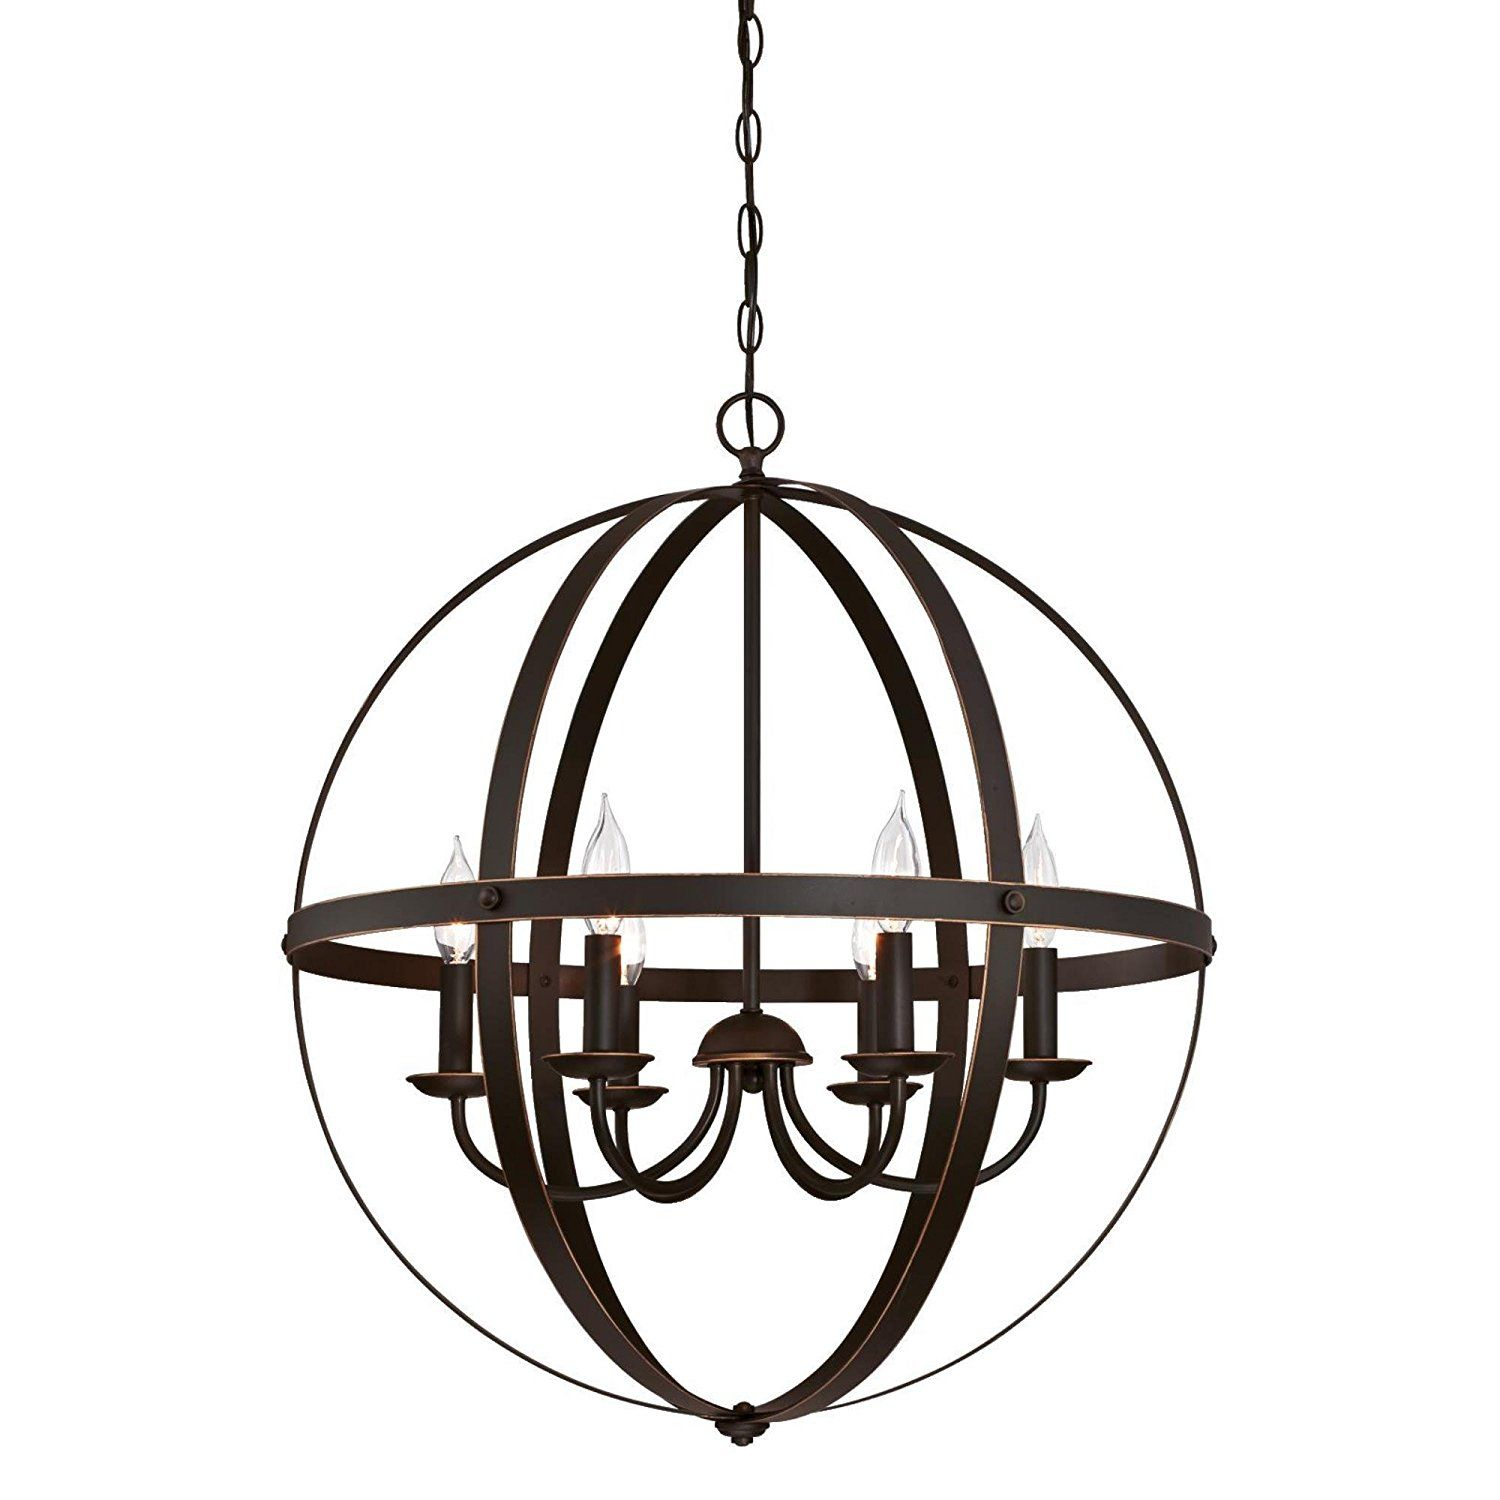 open cage design with exposed bulbs ideal for vintage inspired rh pinterest com